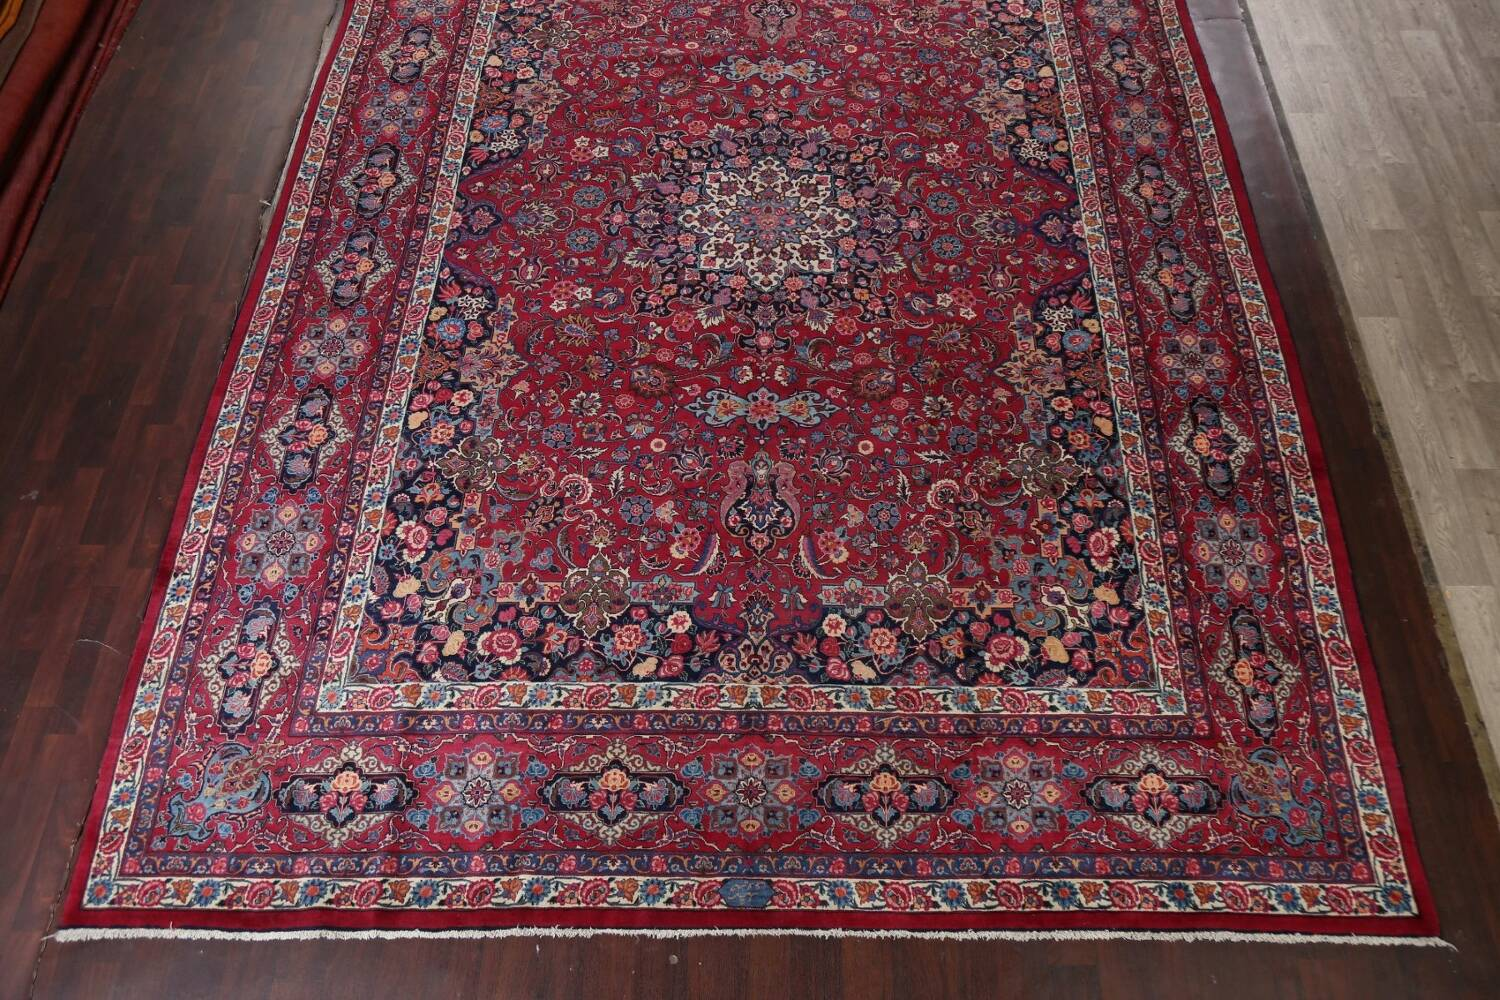 Antique Vegetable Dye Mood Persian Red Rug 11x15 image 5